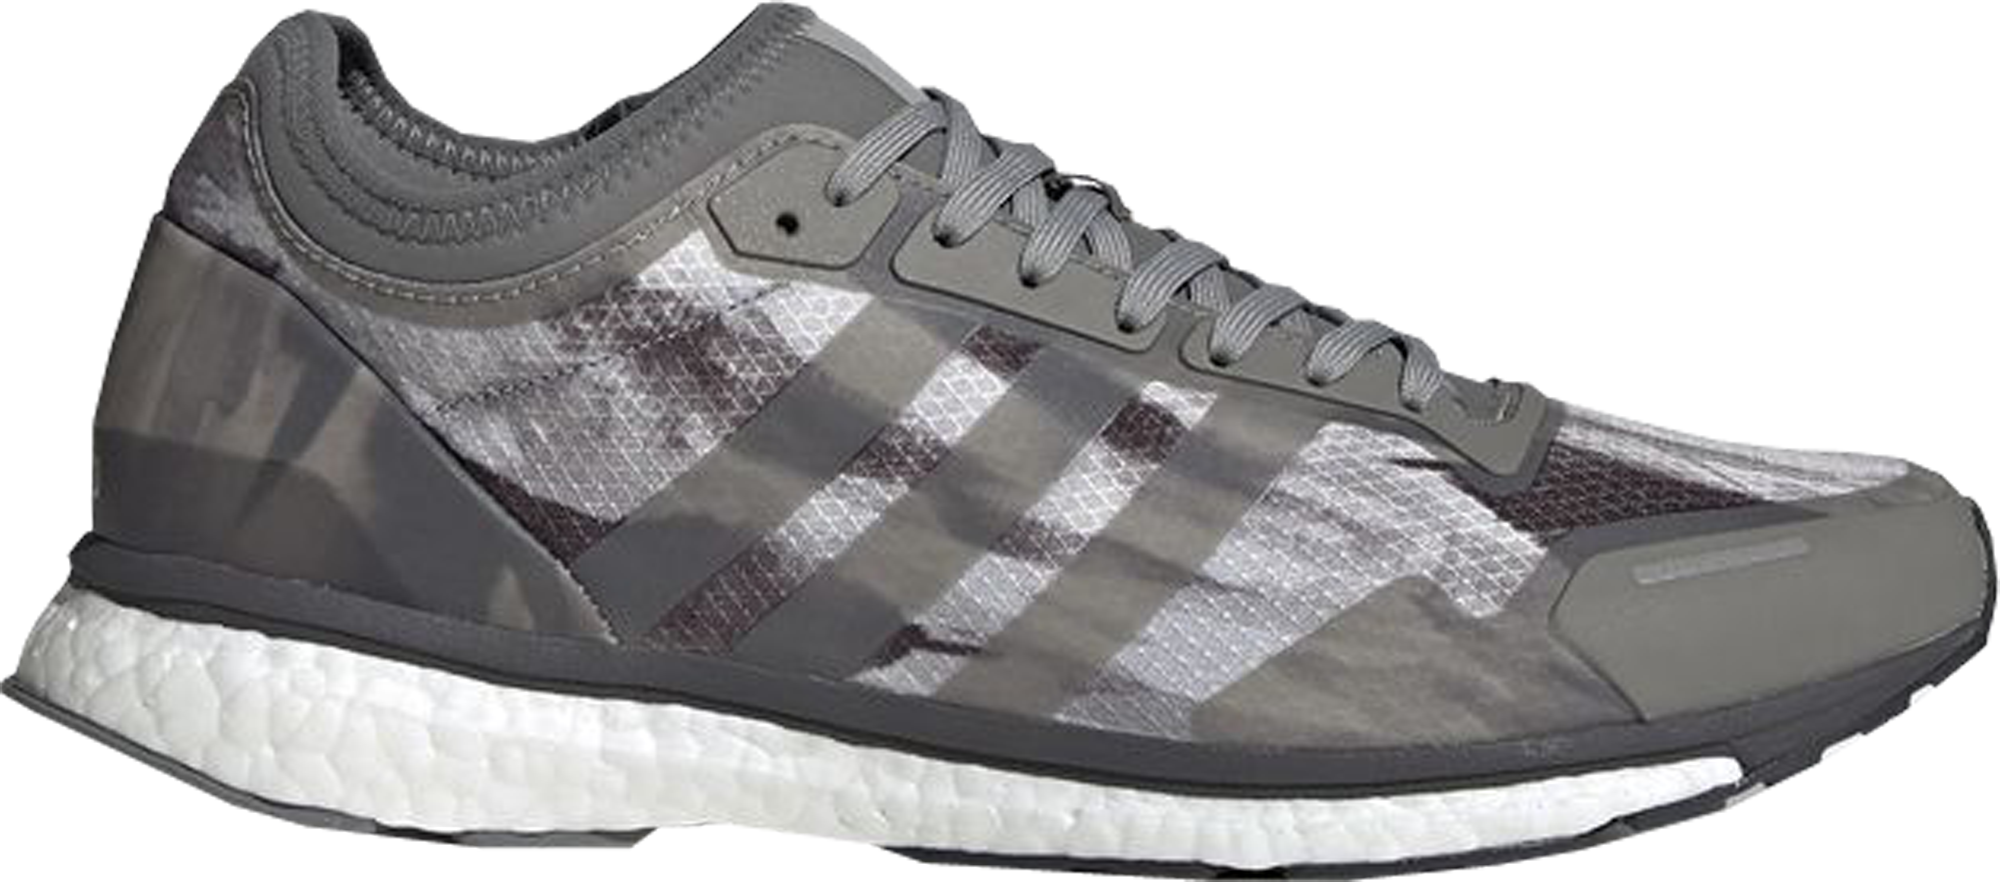 low priced 67bbd d77fd HypeAnalyzer · adidas adiZero Adios 3 Undefeated Performance